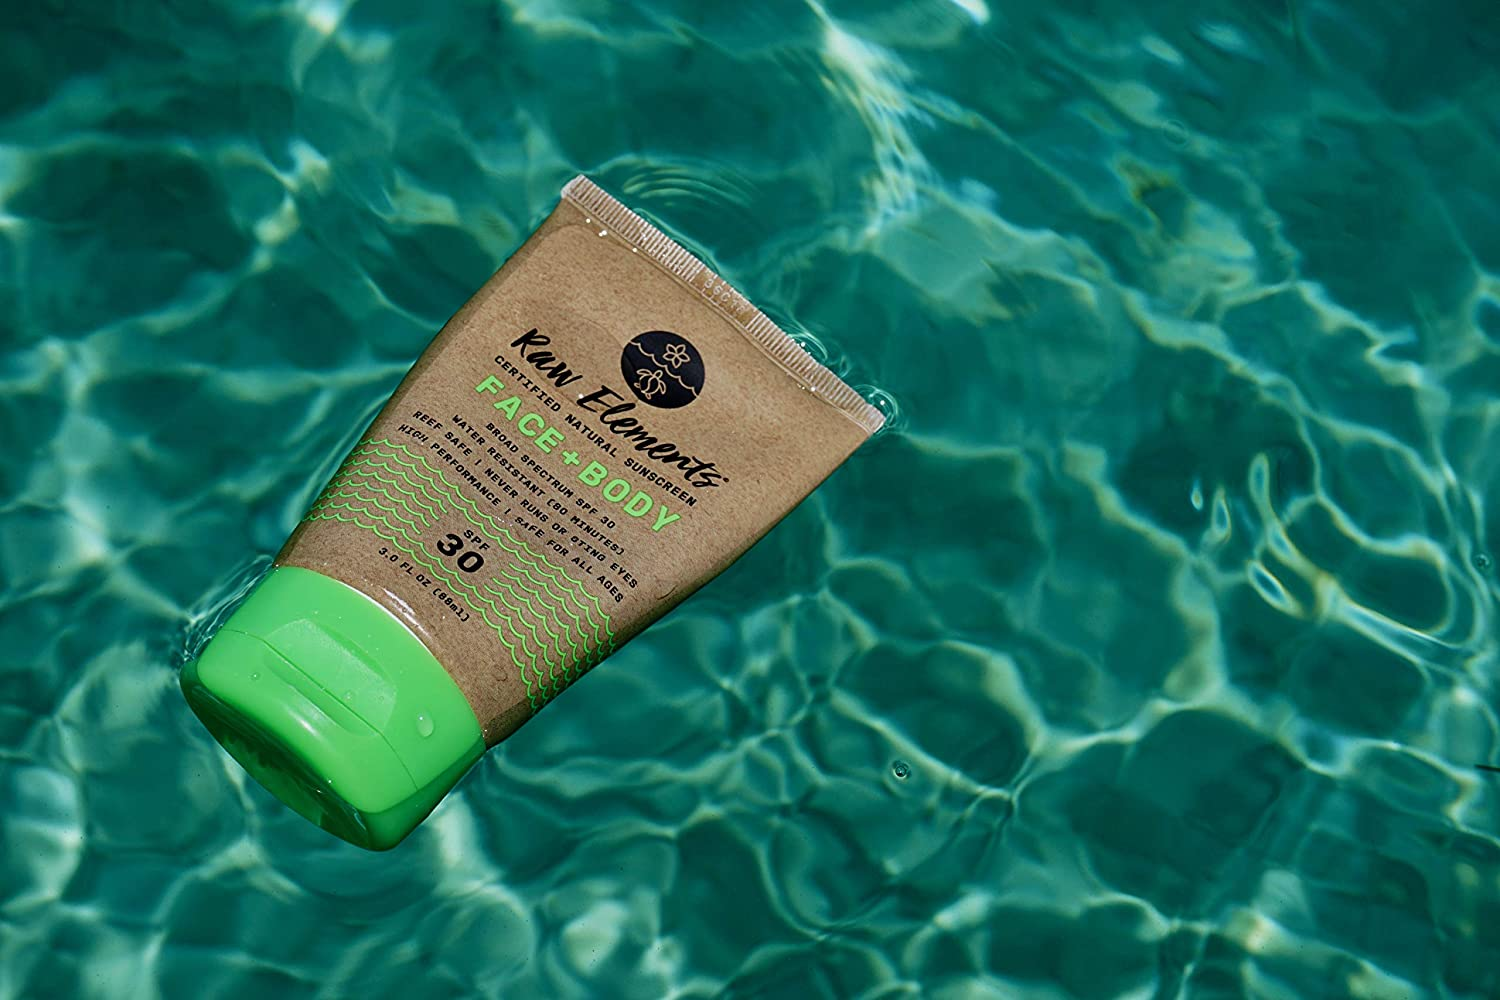 The Reefsafe sunscreen from rawelements travel product recommended by Jule Eisendick on Lifney.